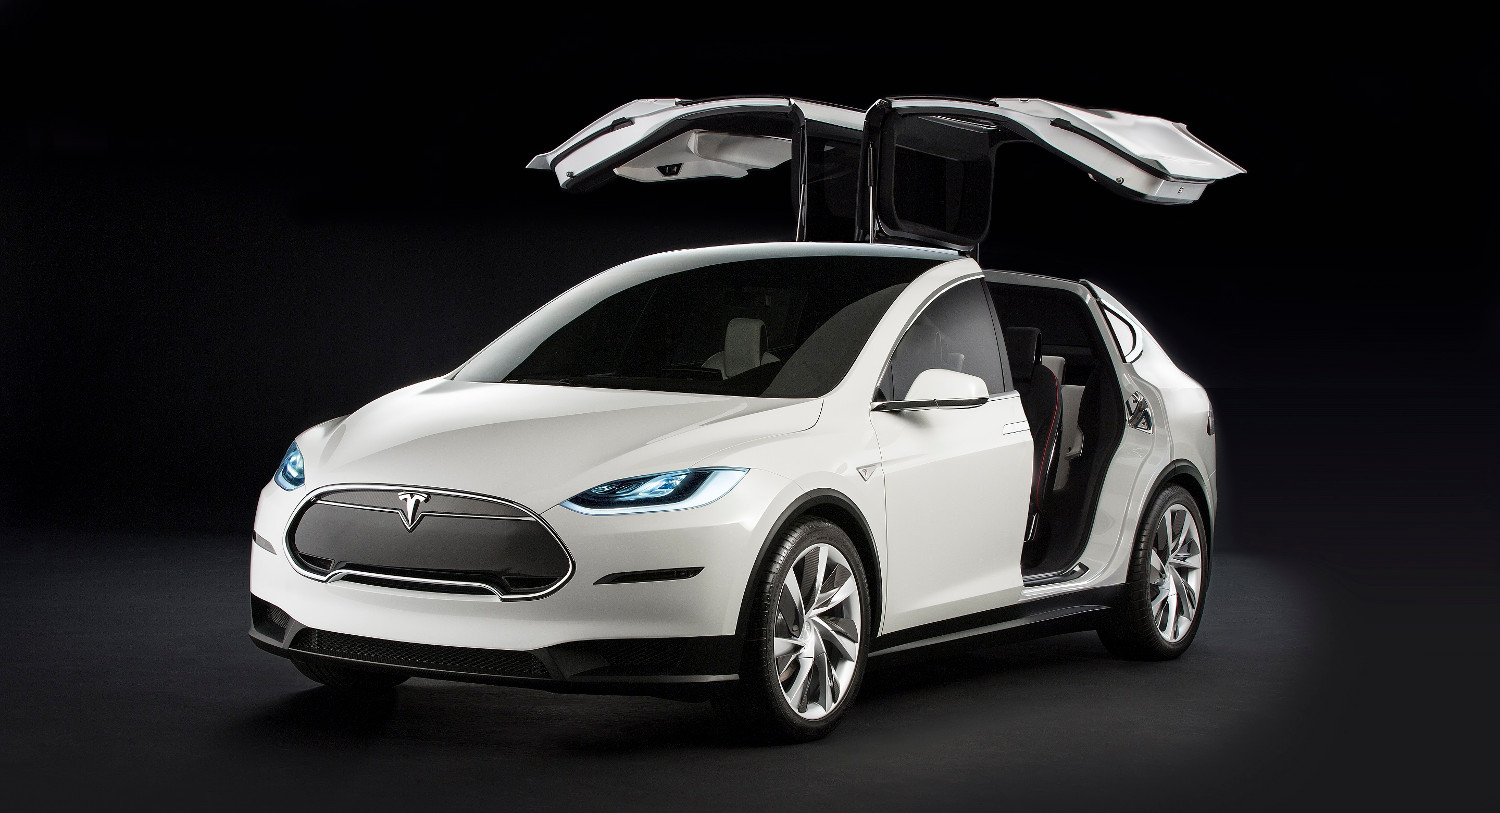 Epa Rates Tesla Model X At 250 Miles Motrolix